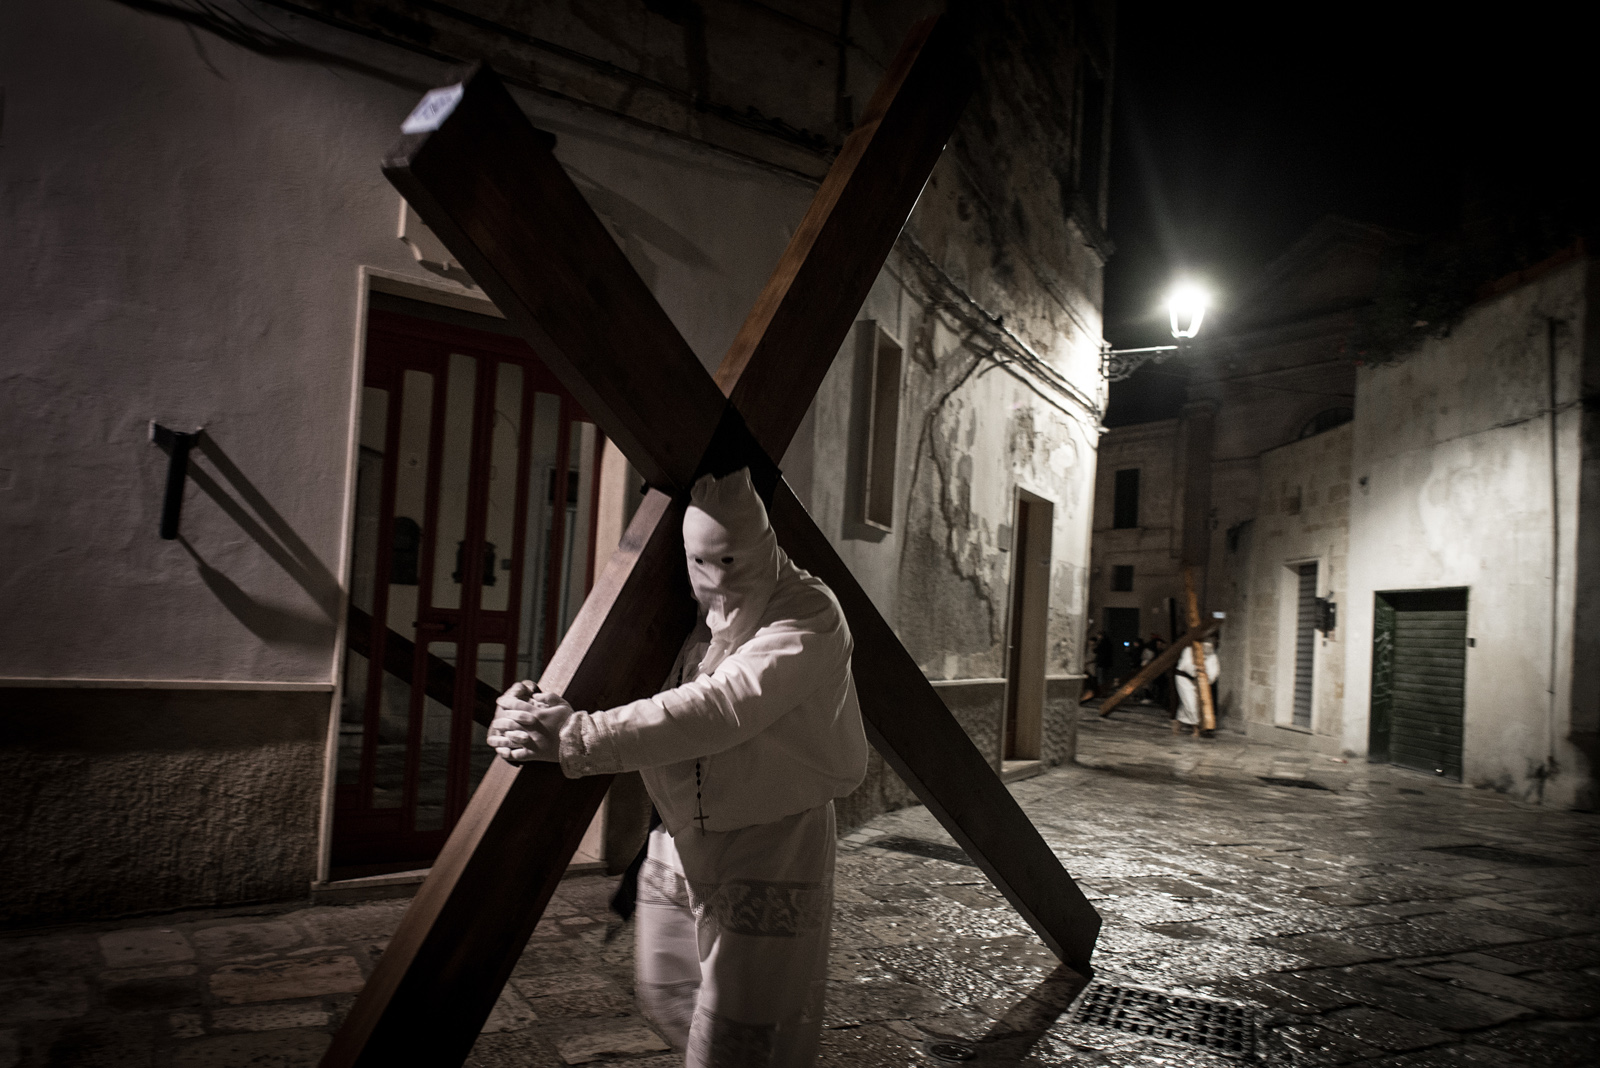 "1. Two ""Pappamusci"" worshippers in a church during the Holy Week pilgrimage in Francavilla Fontana. Pairs of barefoot penitents dressed in white visit all of the churches in the city throughout the night to ask for forgiveness from the Lord. Their identity is kept strictly secret. / 2. In Noicattaro, Molfetta, Francavilla Fontana and other cities of Apulia, hooded penitents called ""Cruciferi"" drag crosses along the streets in procession."